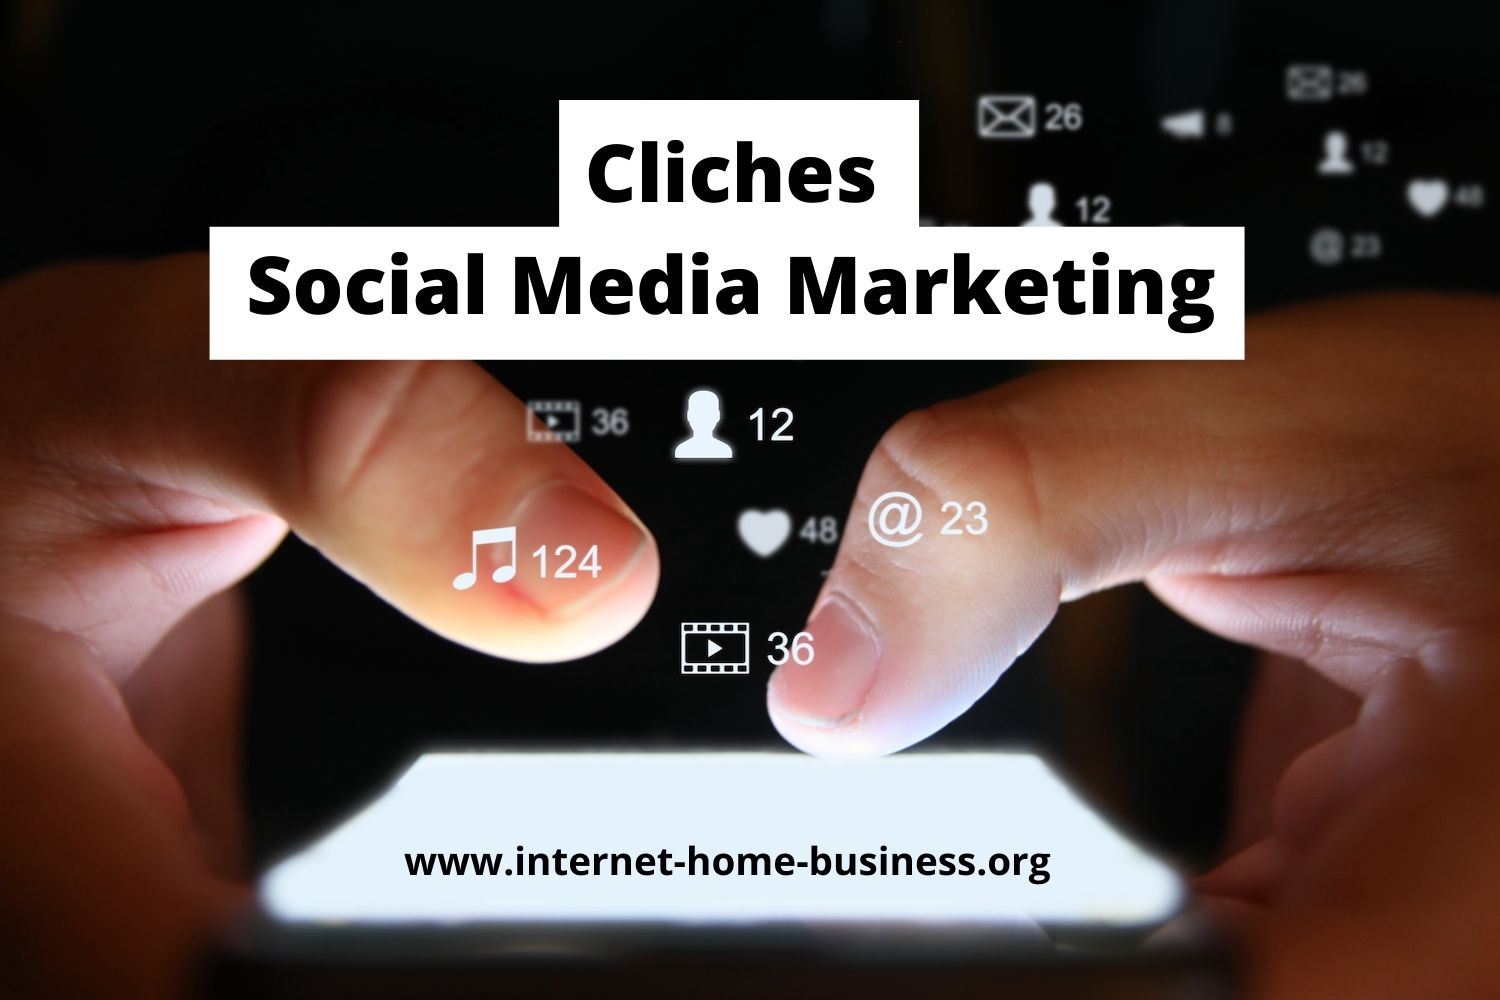 Cliches about Social Media Marketing